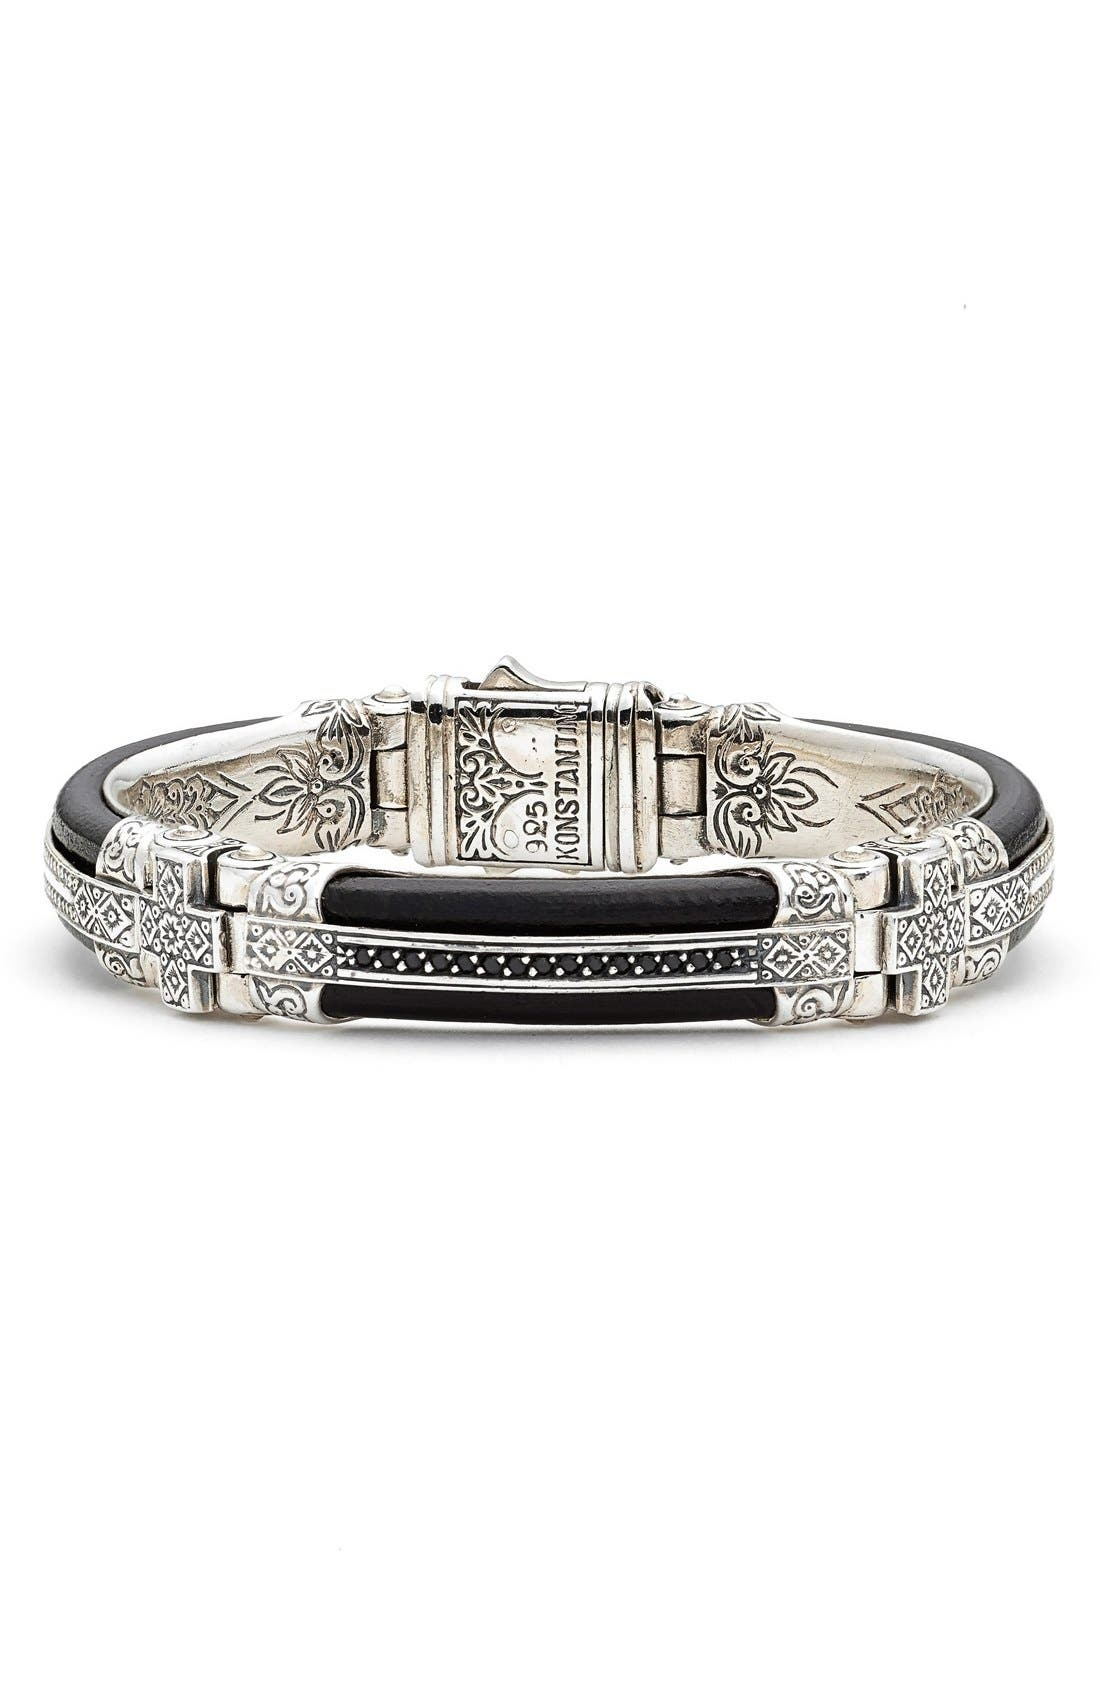 Plato Etched Sterling Silver & Leather Bracelet,                             Main thumbnail 1, color,                             Silver